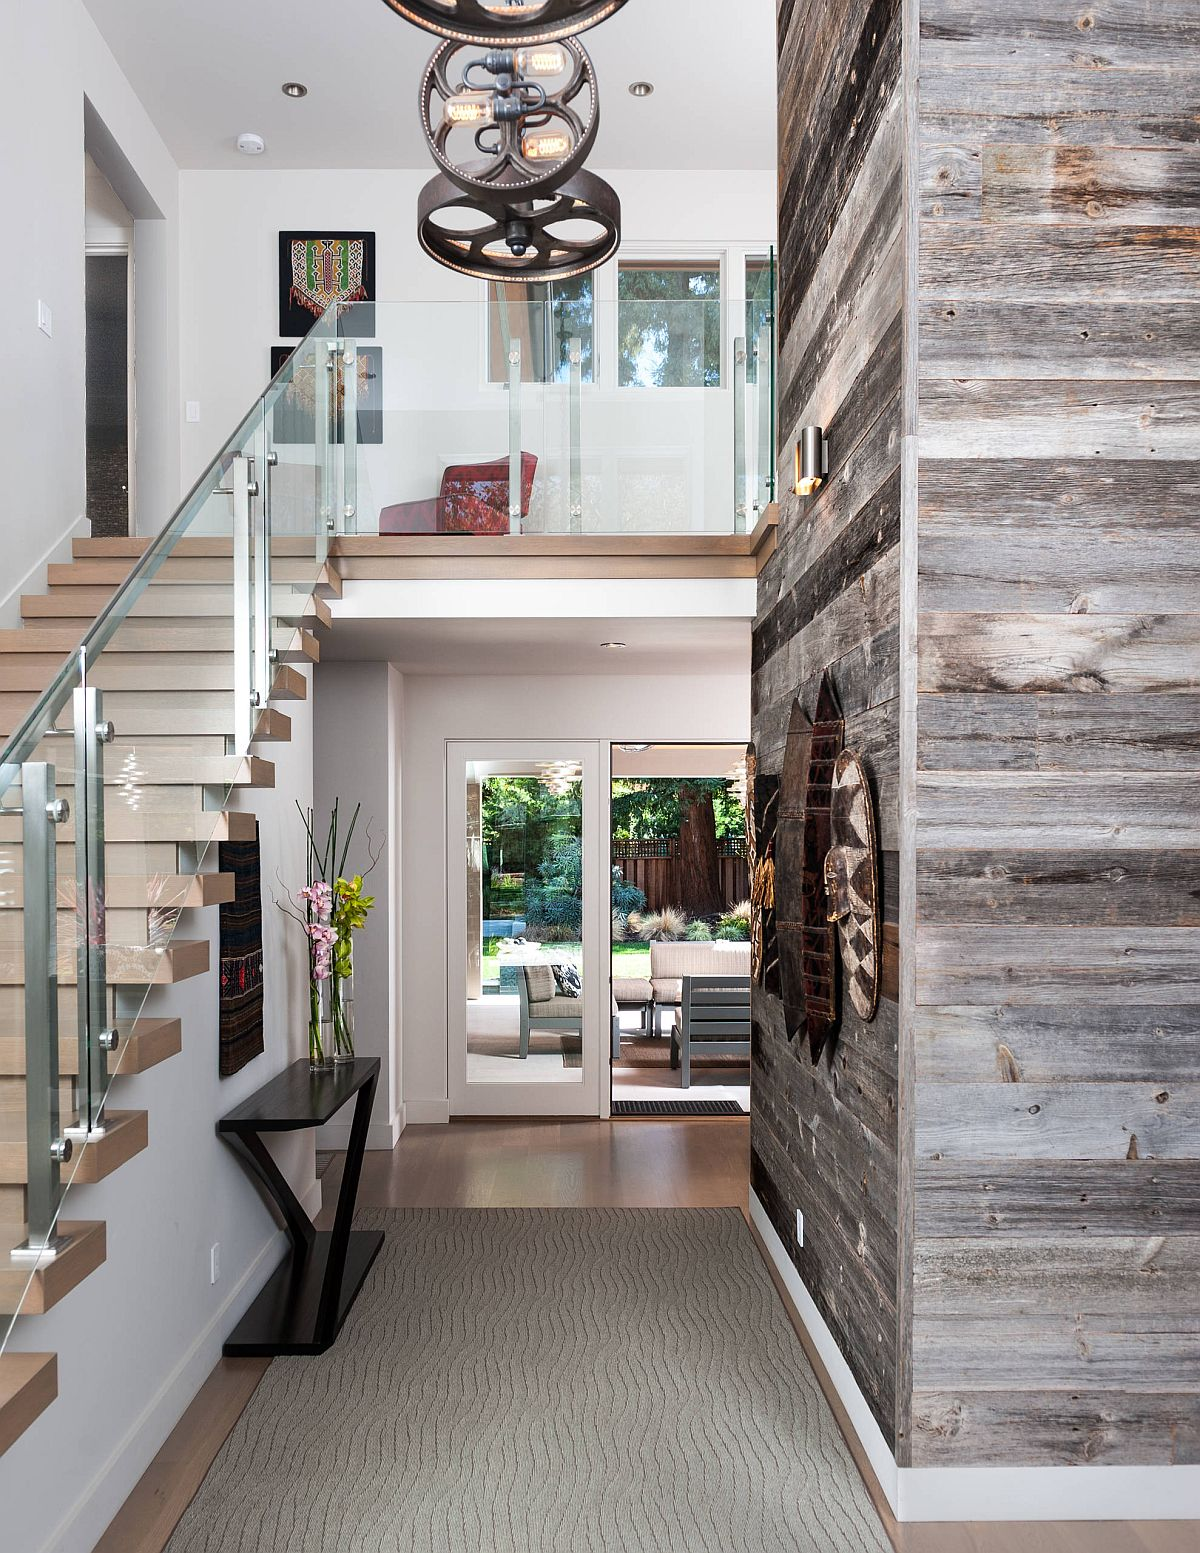 Reclaimed wood wall add style and textural contrast to the spacious contemporary entry